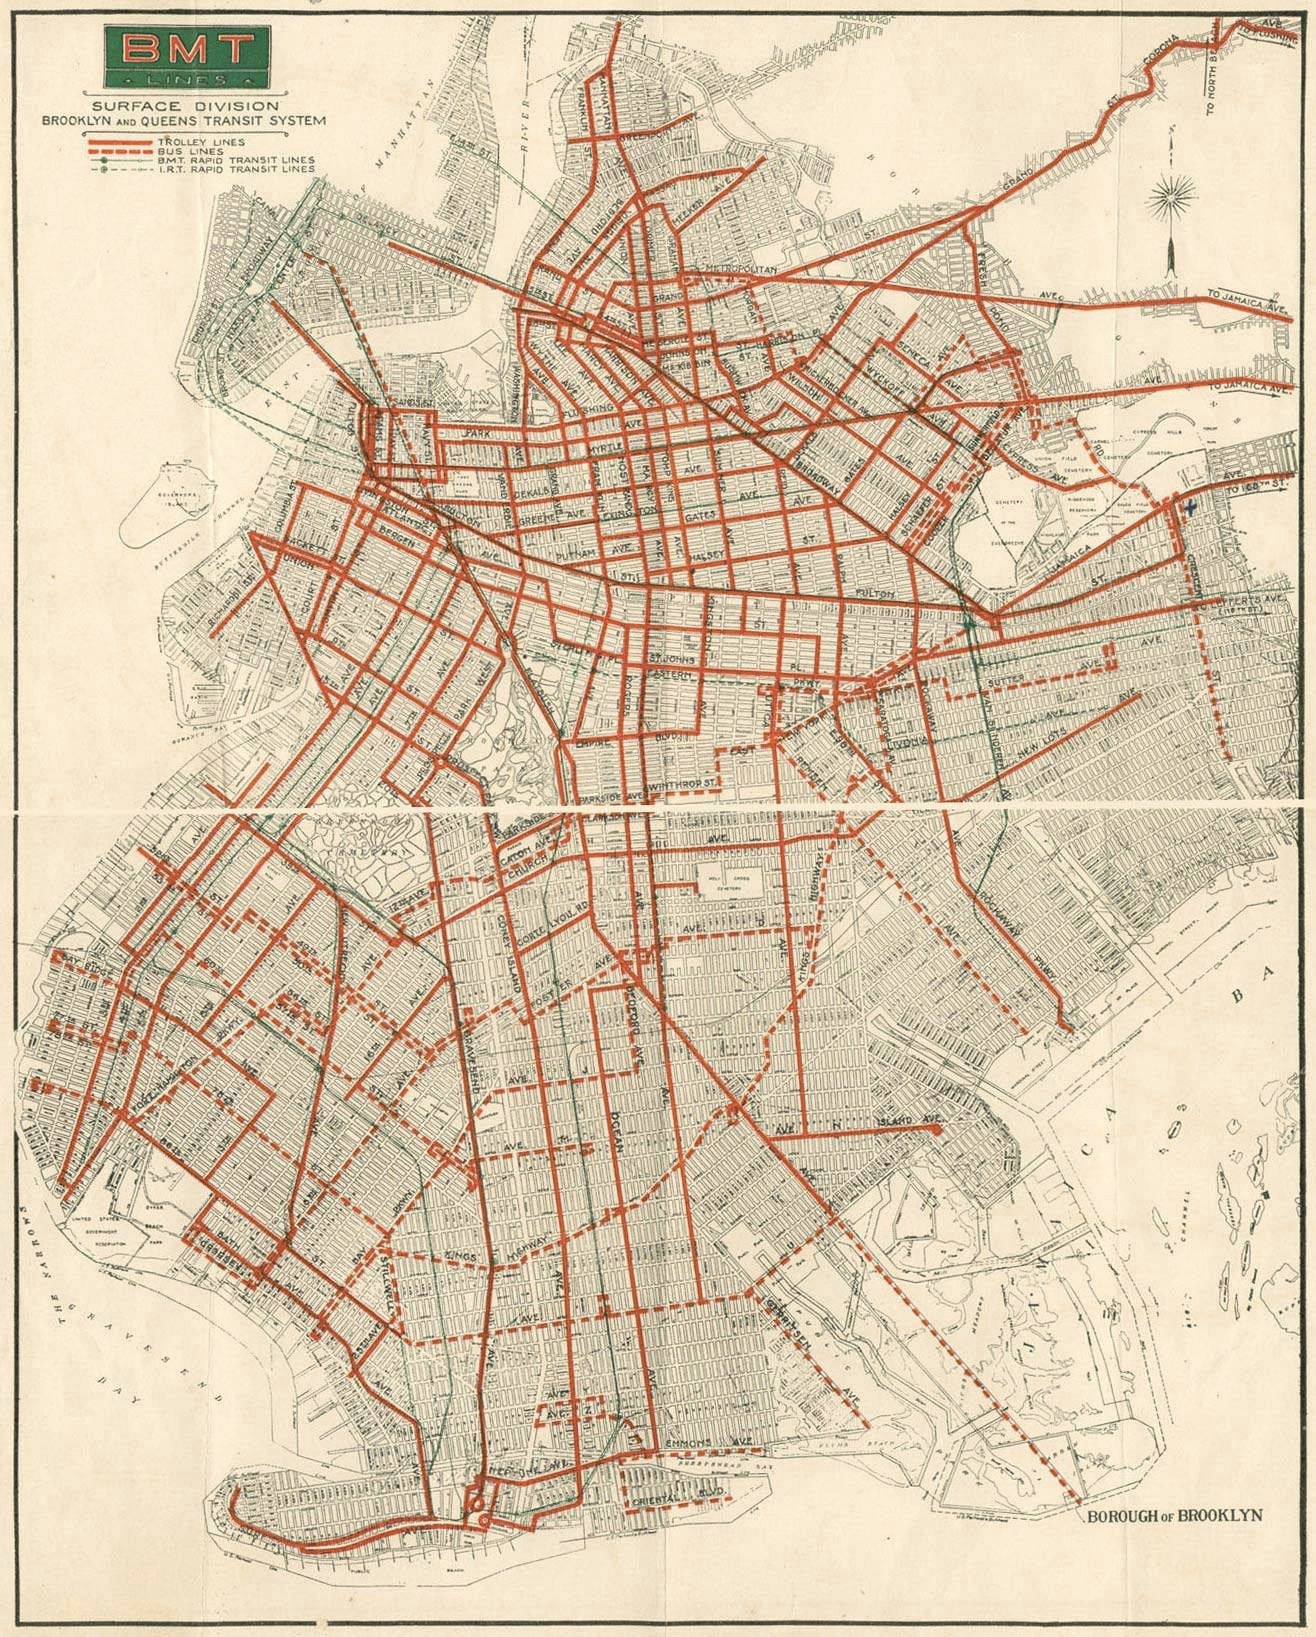 1930s brooklyn bmt, Brooklyn trolley map